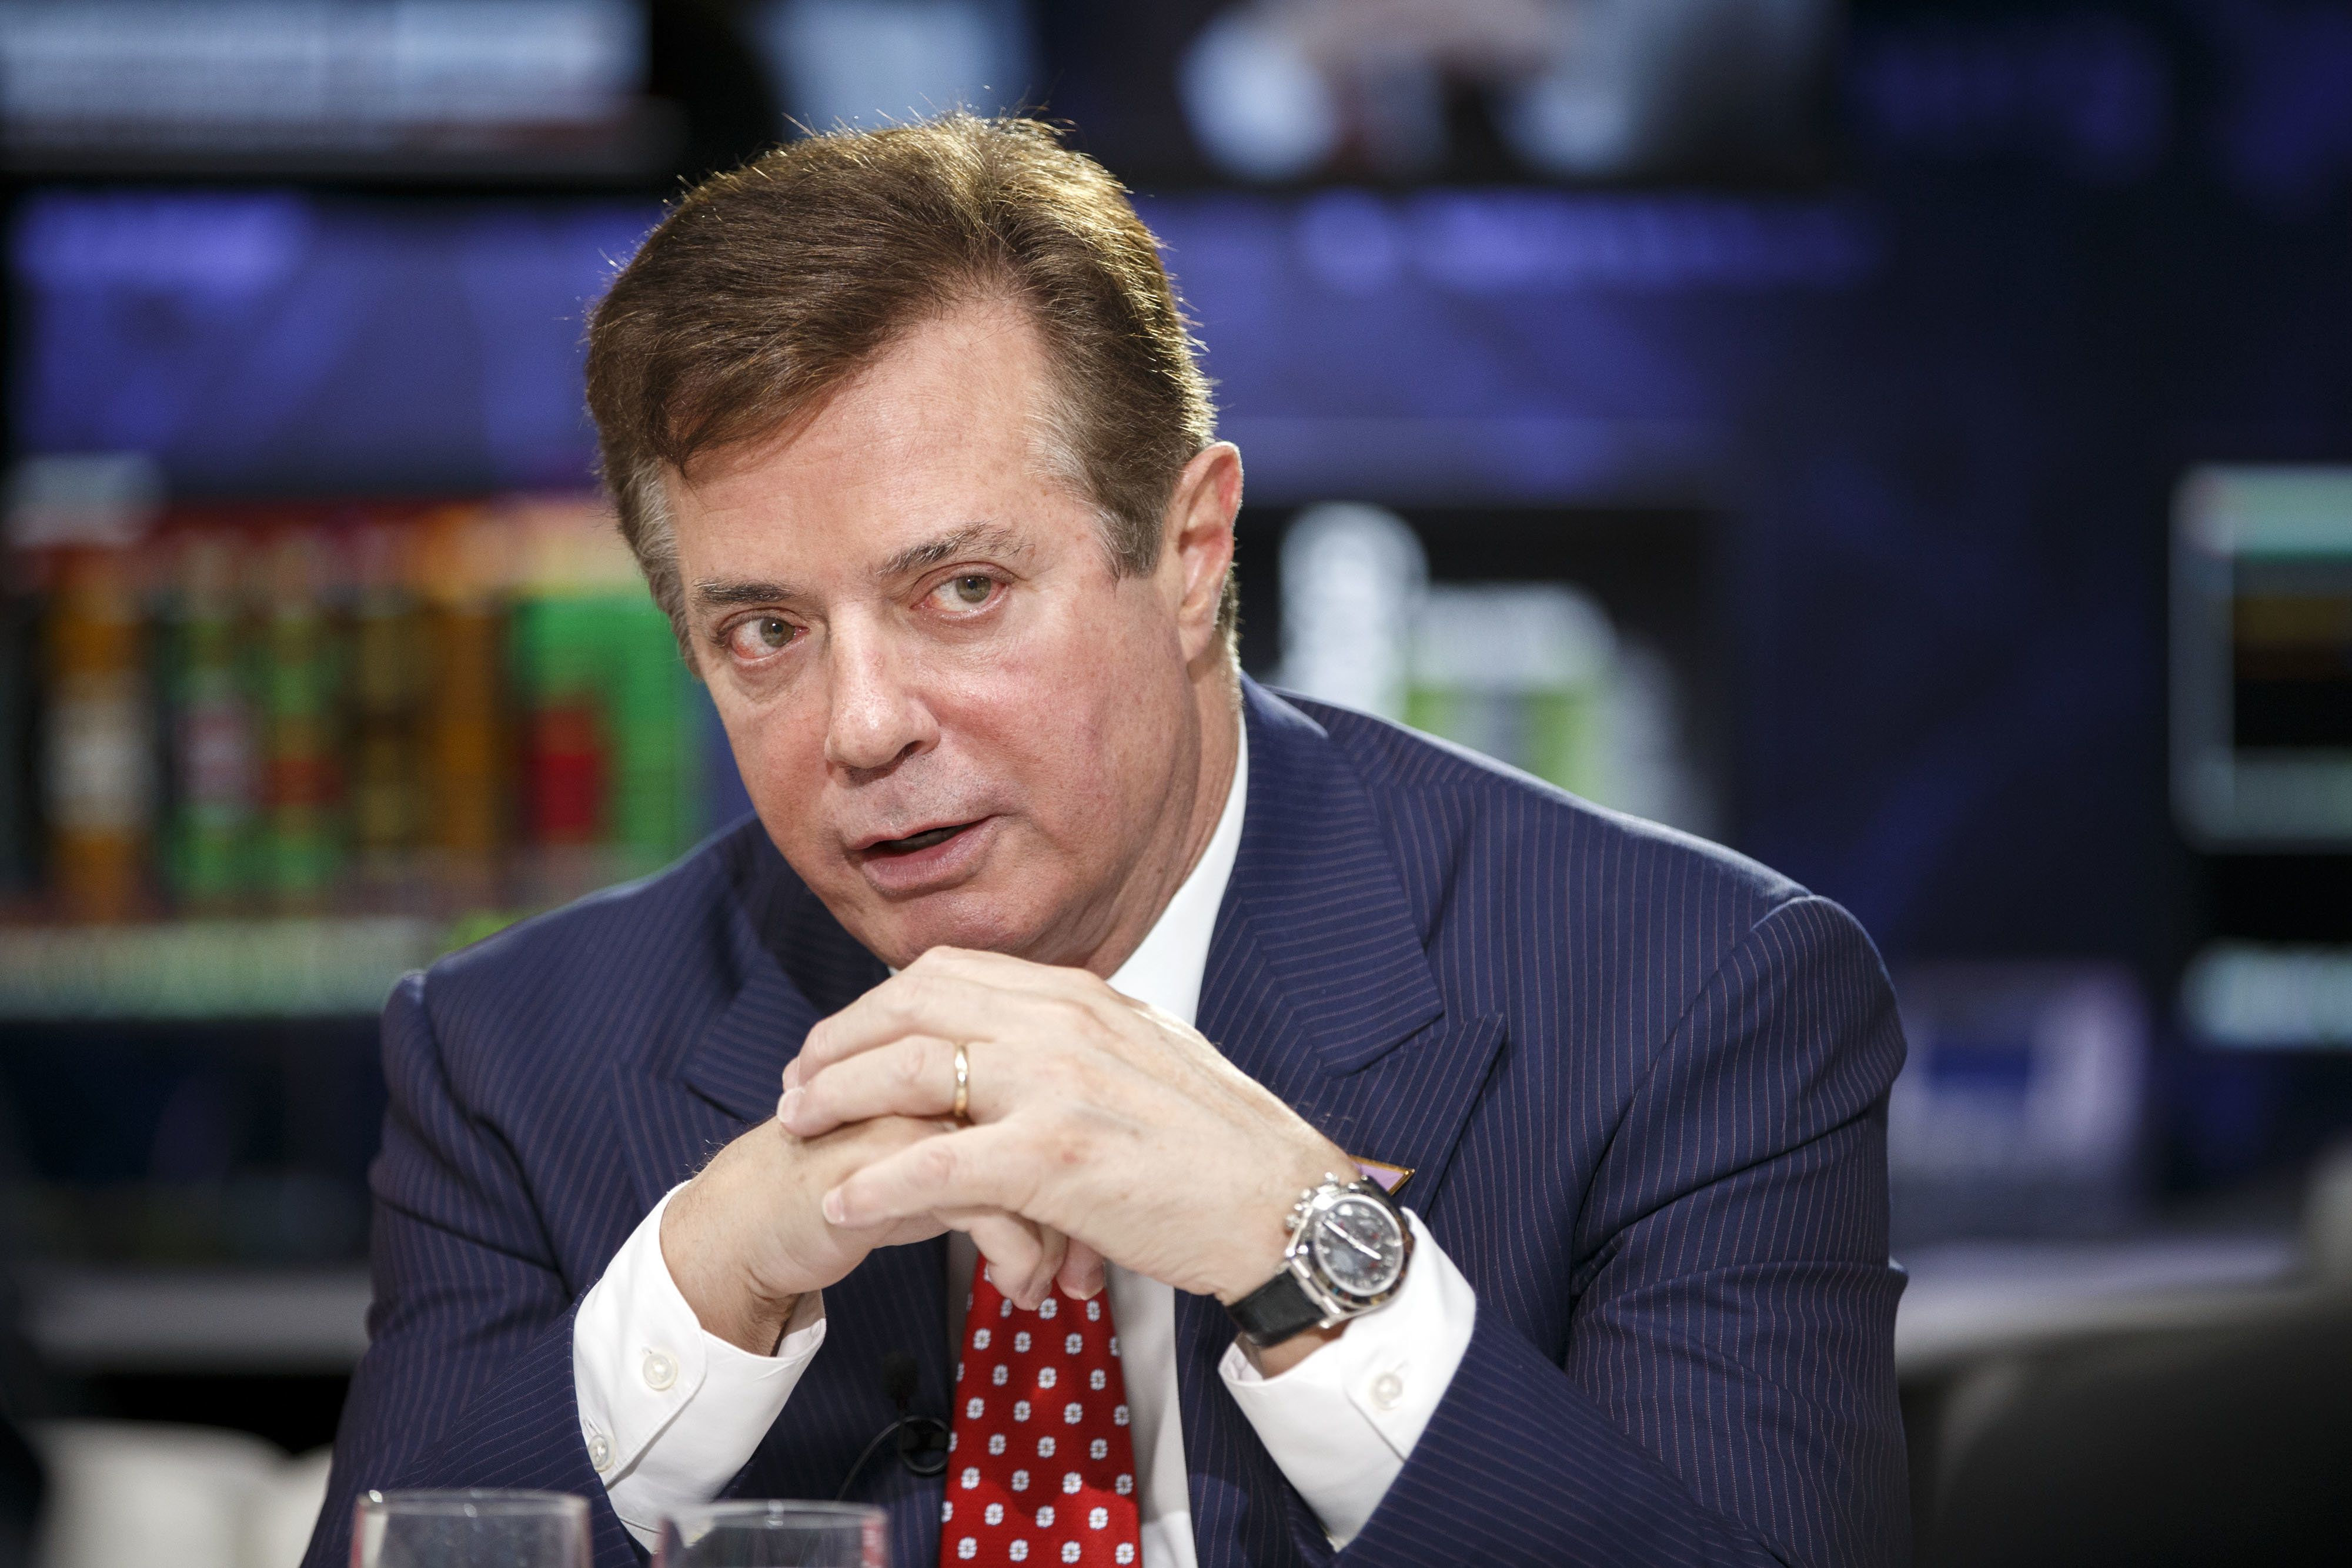 Paul Manafort, campaign manager for Presumptive 2016 Republican Presidential Nominee Donald Trump, speaks during a Bloomberg Politics interview on the sidelines of the Republican National Convention (RNC) in Cleveland, Ohio, U.S., on Monday, July 18, 2016. Protests at the Republican National Convention will show 'lawlessness' and 'lack of respect' for political discourse, Manafort said. Photographer: Patrick Fallon/Bloomberg via Getty Images